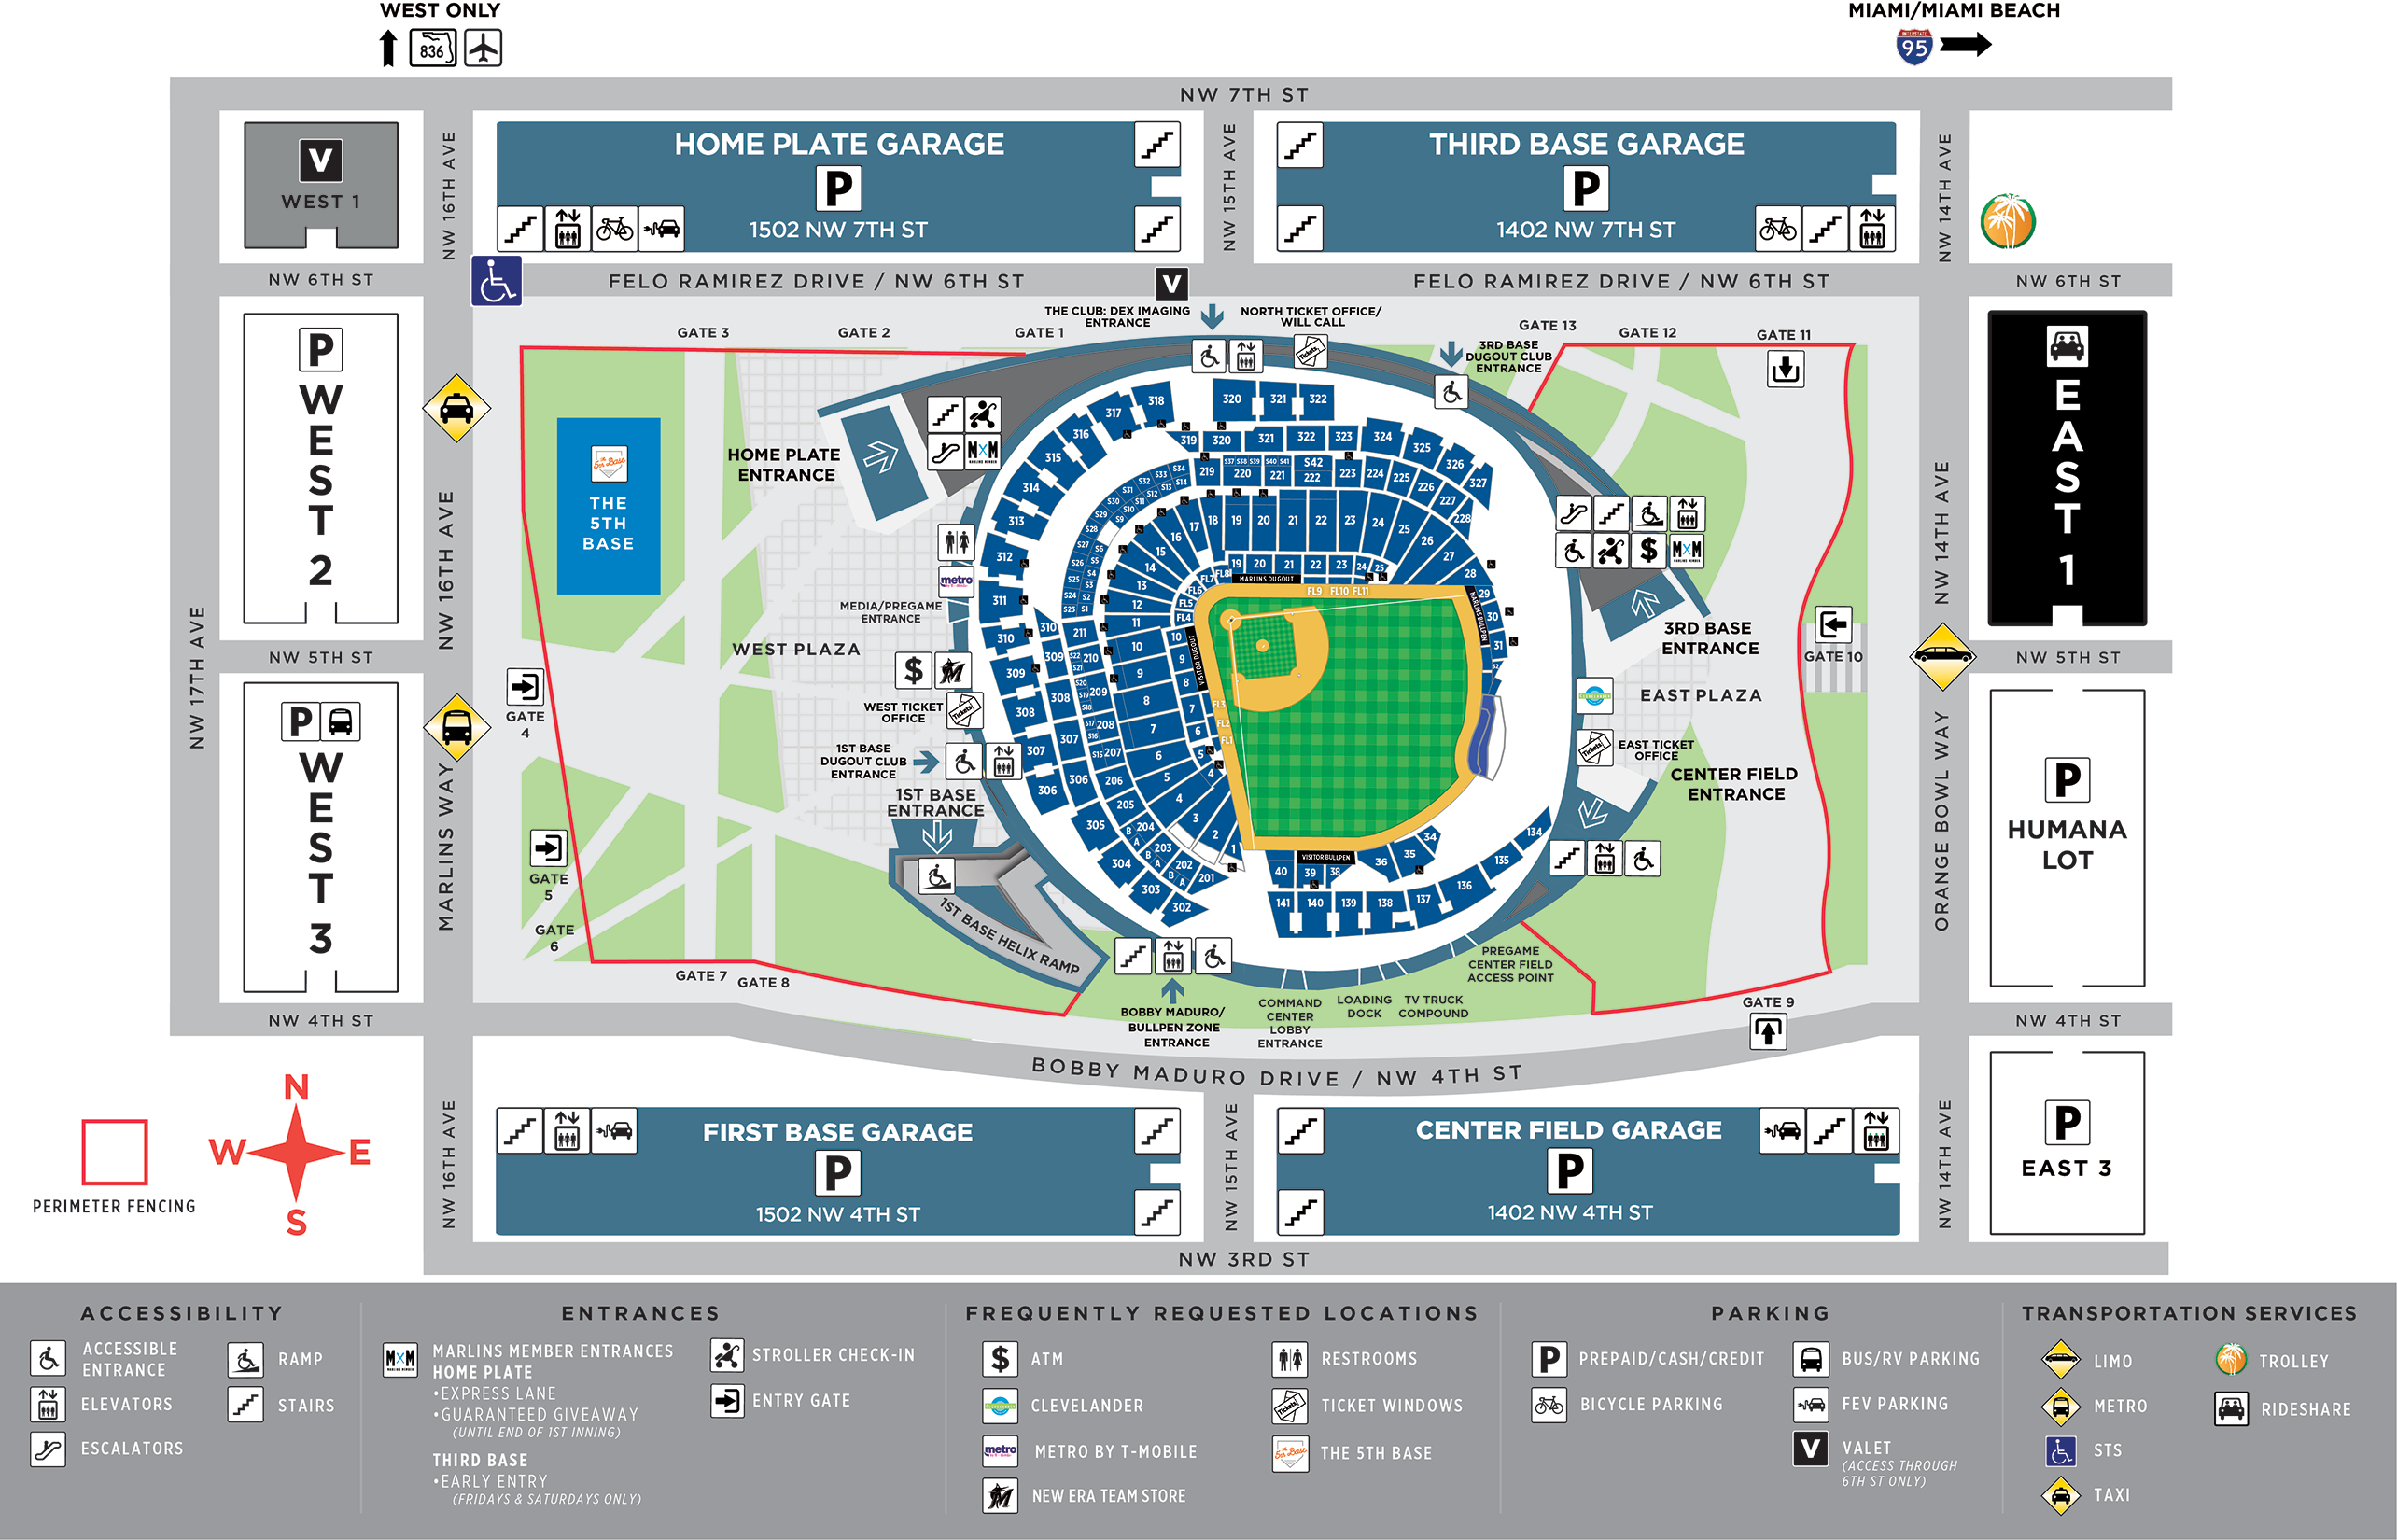 Marlins Park Parking | Miami Marlins on